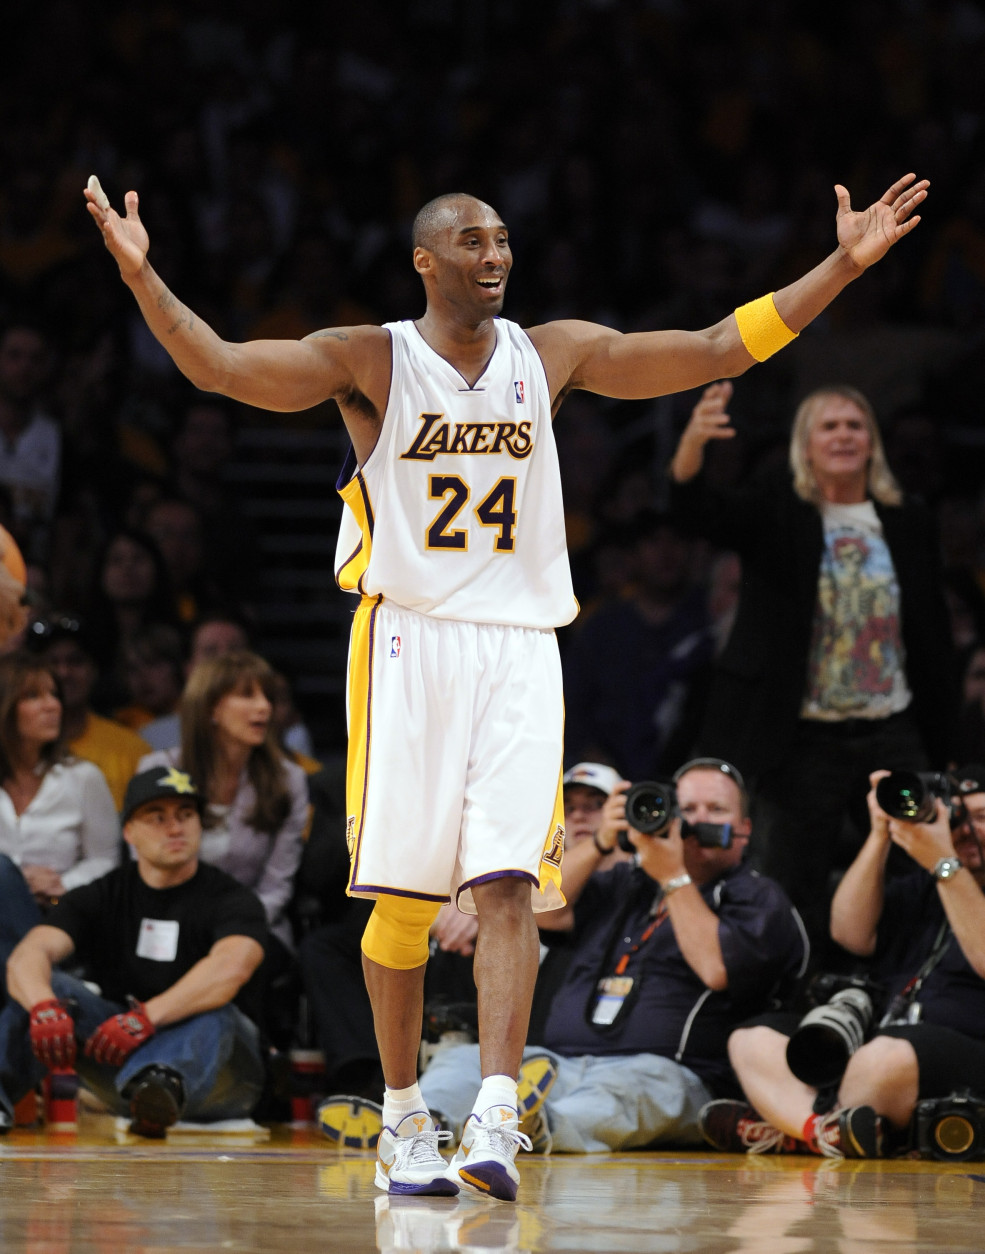 Los Angeles Lakers guard Kobe Bryant reacts to a foul call during the second half of Game 1 in the first round of the NBA basketball playoffs agains the Oklahoma City Thunder, Sunday, April 18, 2010, in Los Angeles. The Lakers won87-79. (AP Photo/Mark J. Terrill)